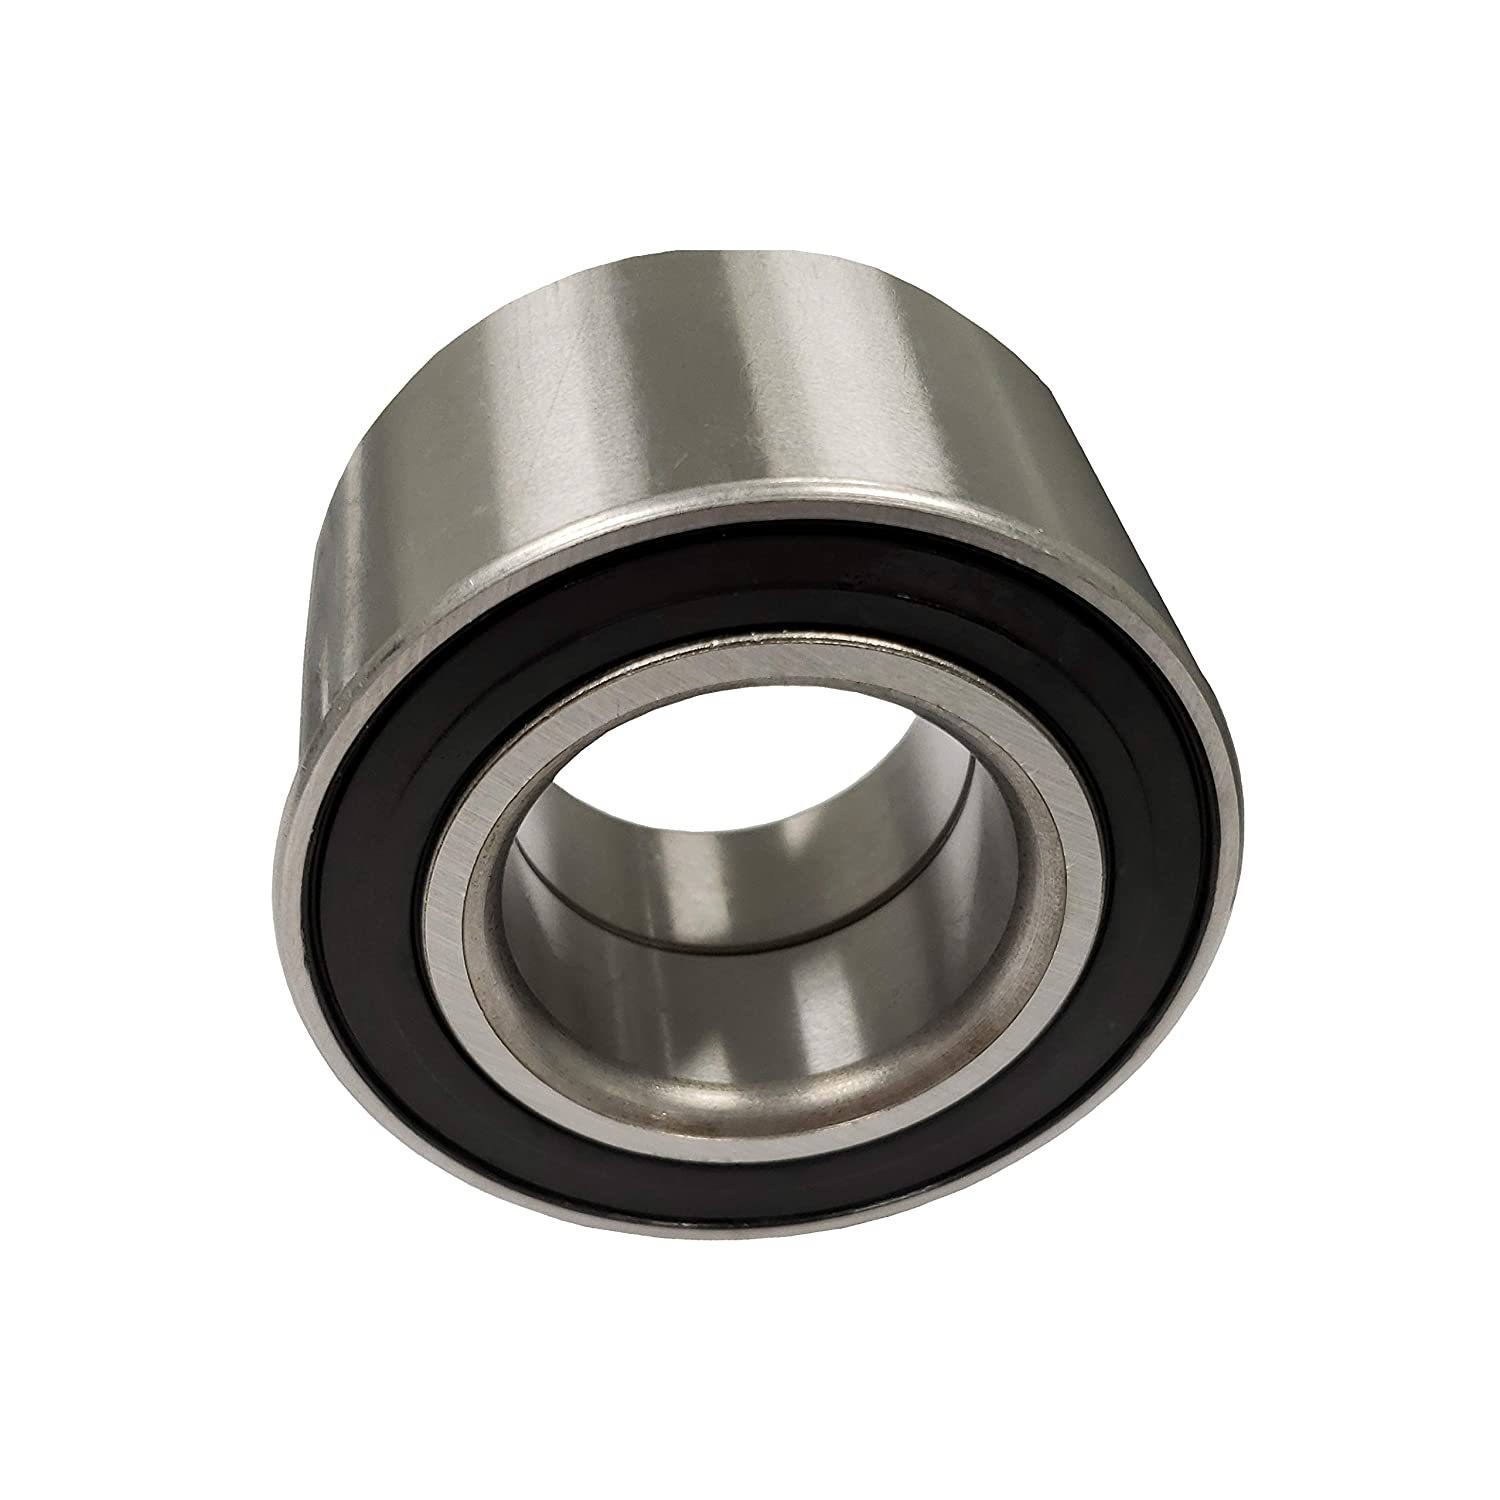 East Lake Axle front wheel bearings kit compatible with Can Am Renegade 800//1000 2007-2012